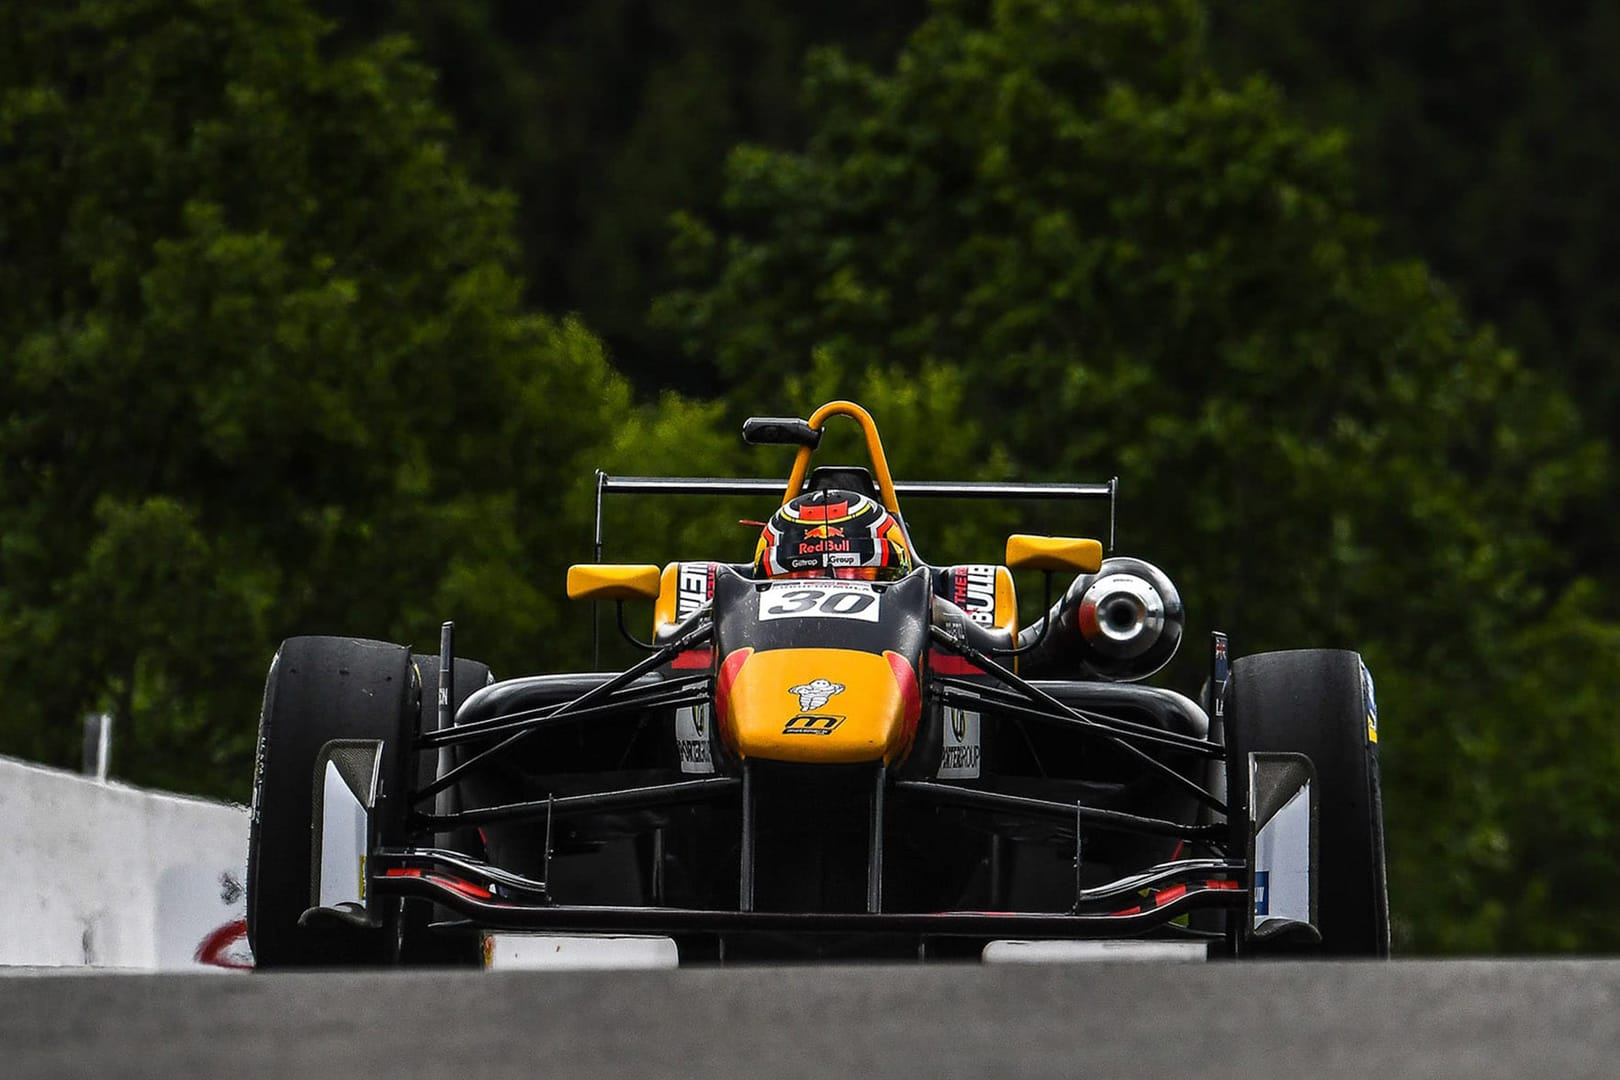 Lawson crashes out of the lead at Spa